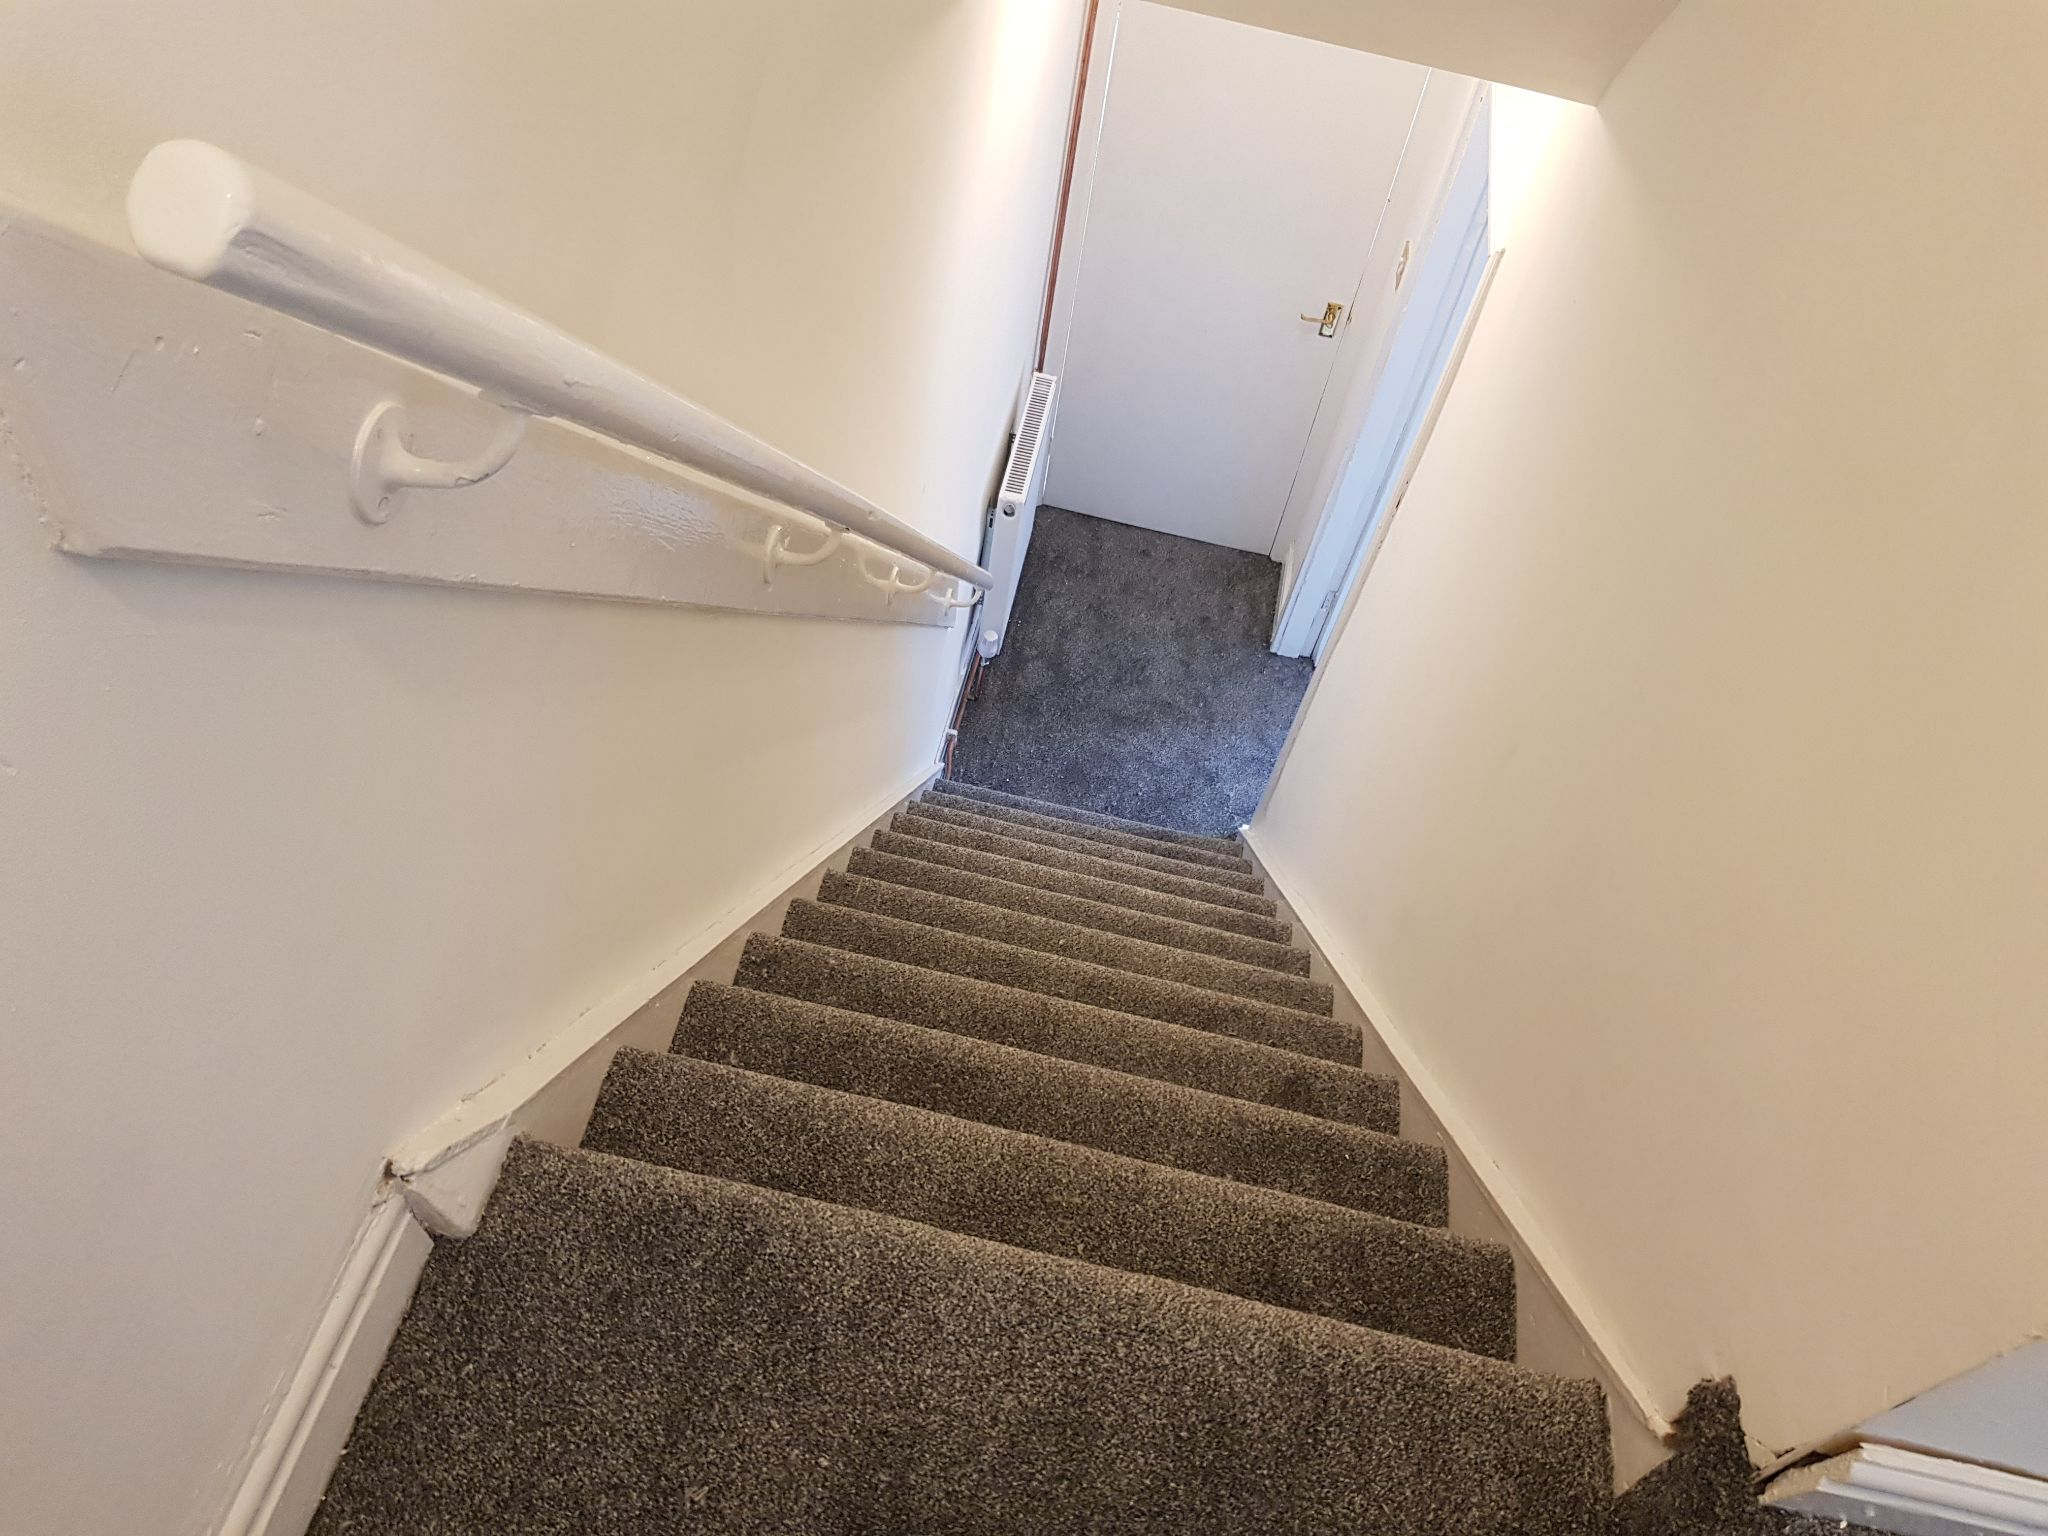 2 Bedroom Mid Terraced House To Rent - Hallway / Stair Case